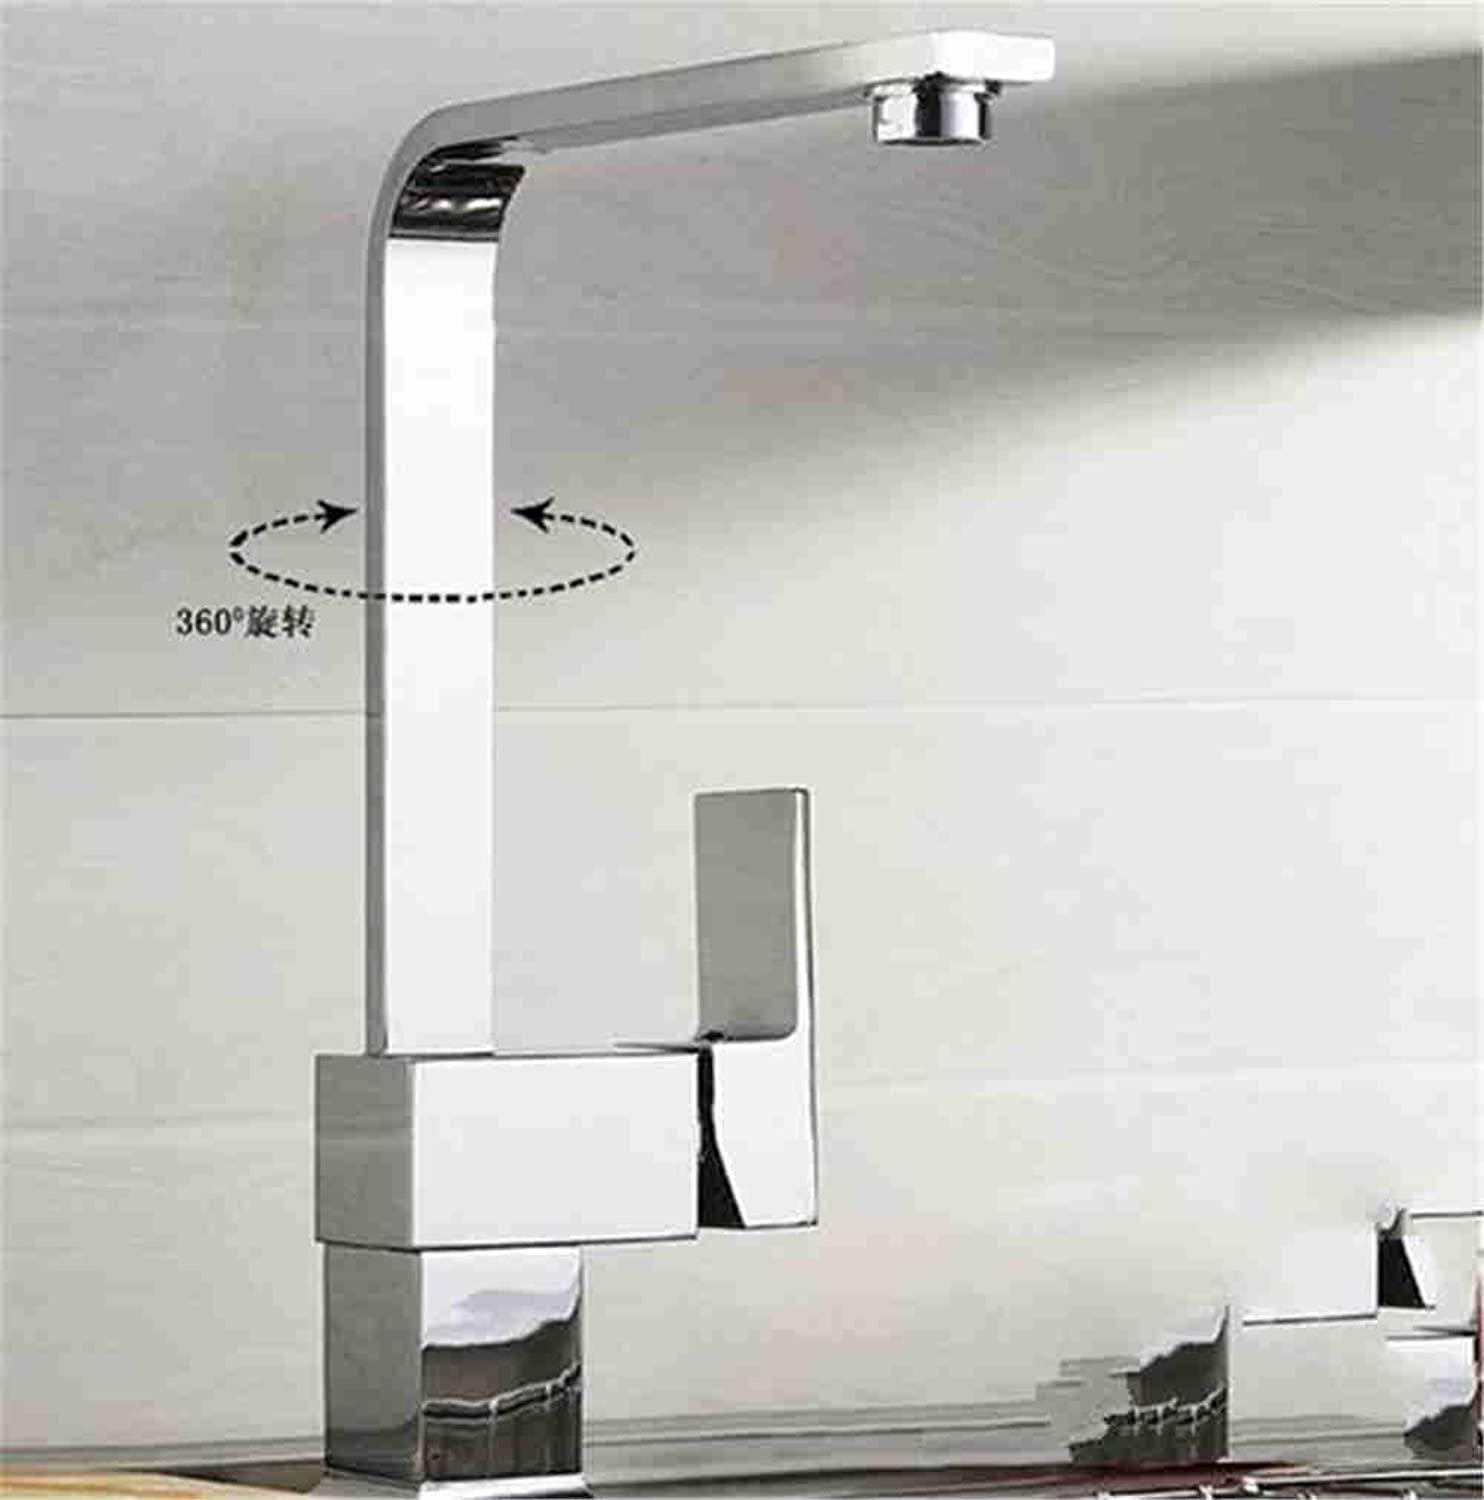 Commercial Kitchen Faucet Stainless Steel Handle Pull Out Kitchen Sink Faucet Kitchen Faucet Sink Faucet hot and Cold Sink Faucet Interface redatable Faucet